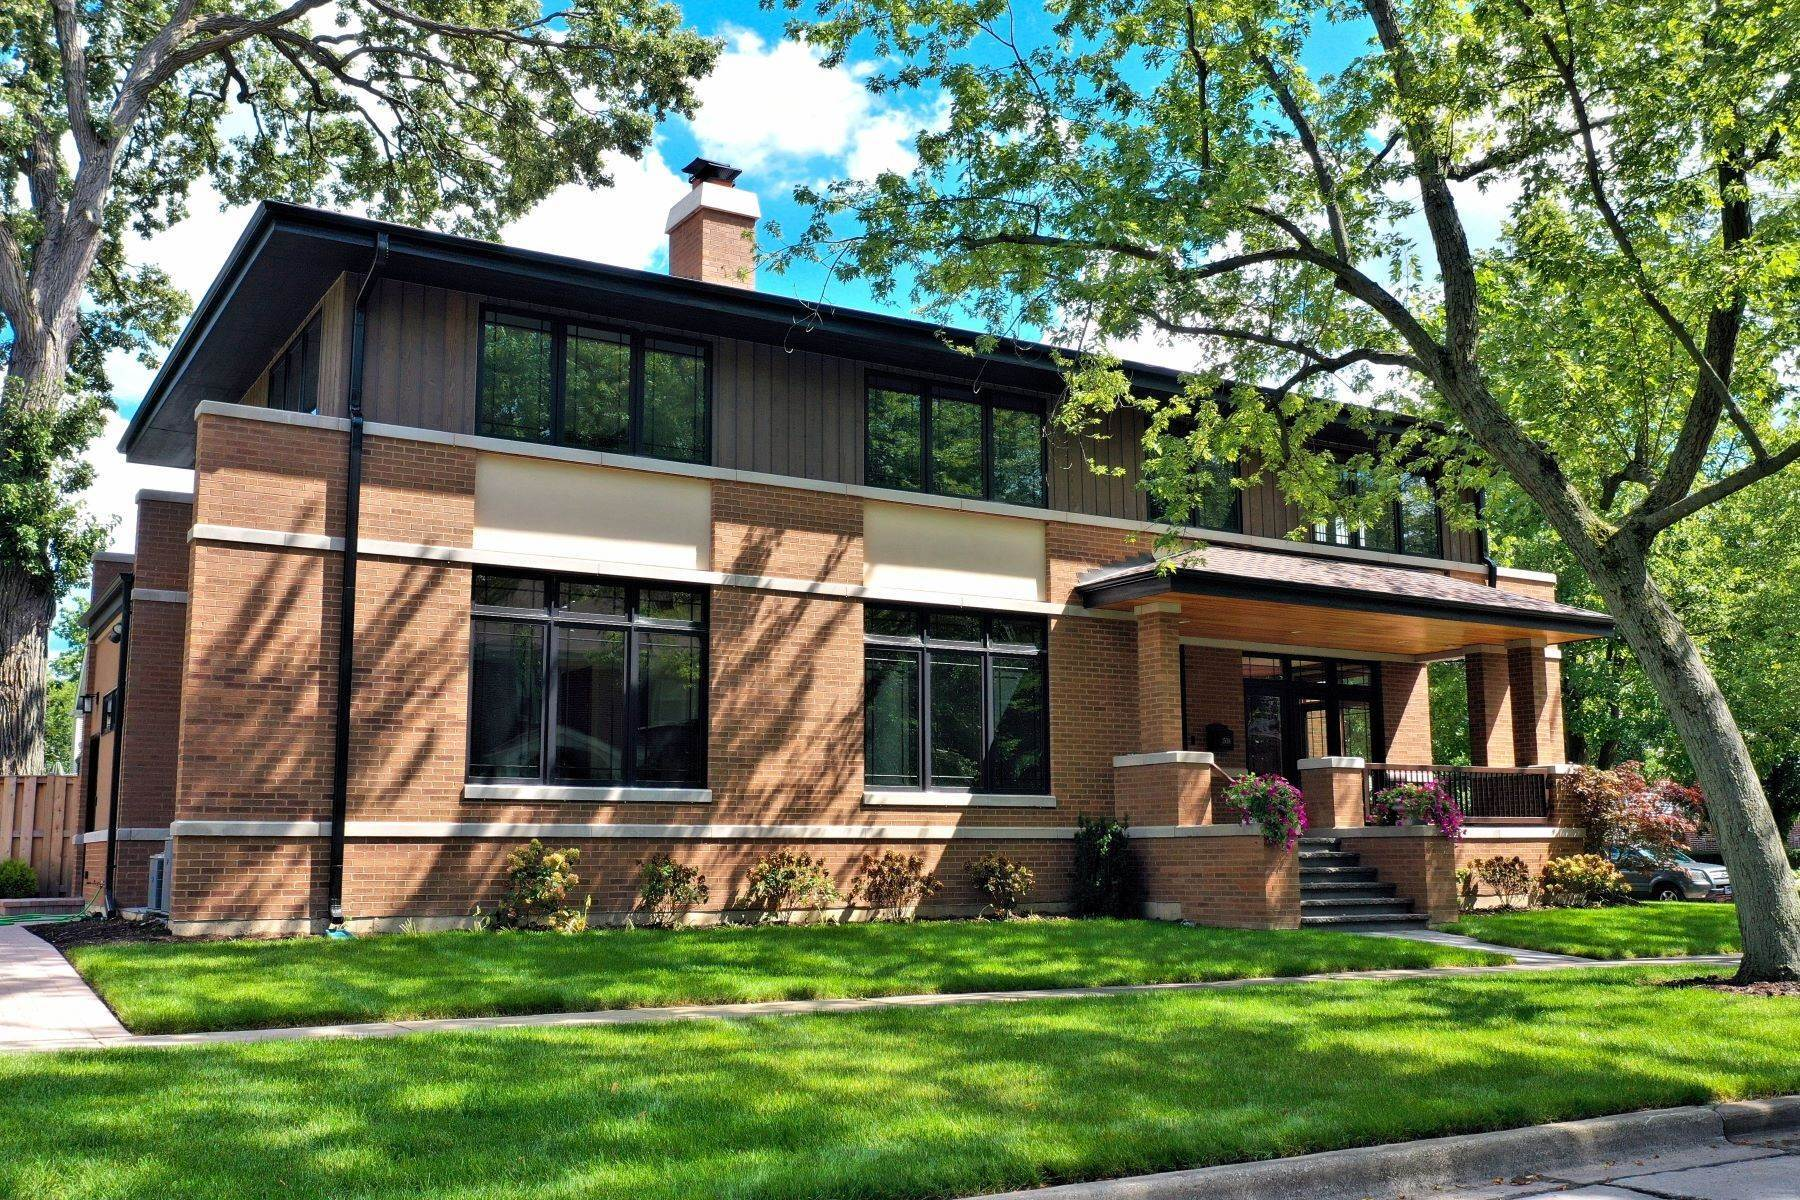 Single Family Homes for Sale at Prairie Style Home 1538 Walnut Avenue Wilmette, Illinois 60091 United States